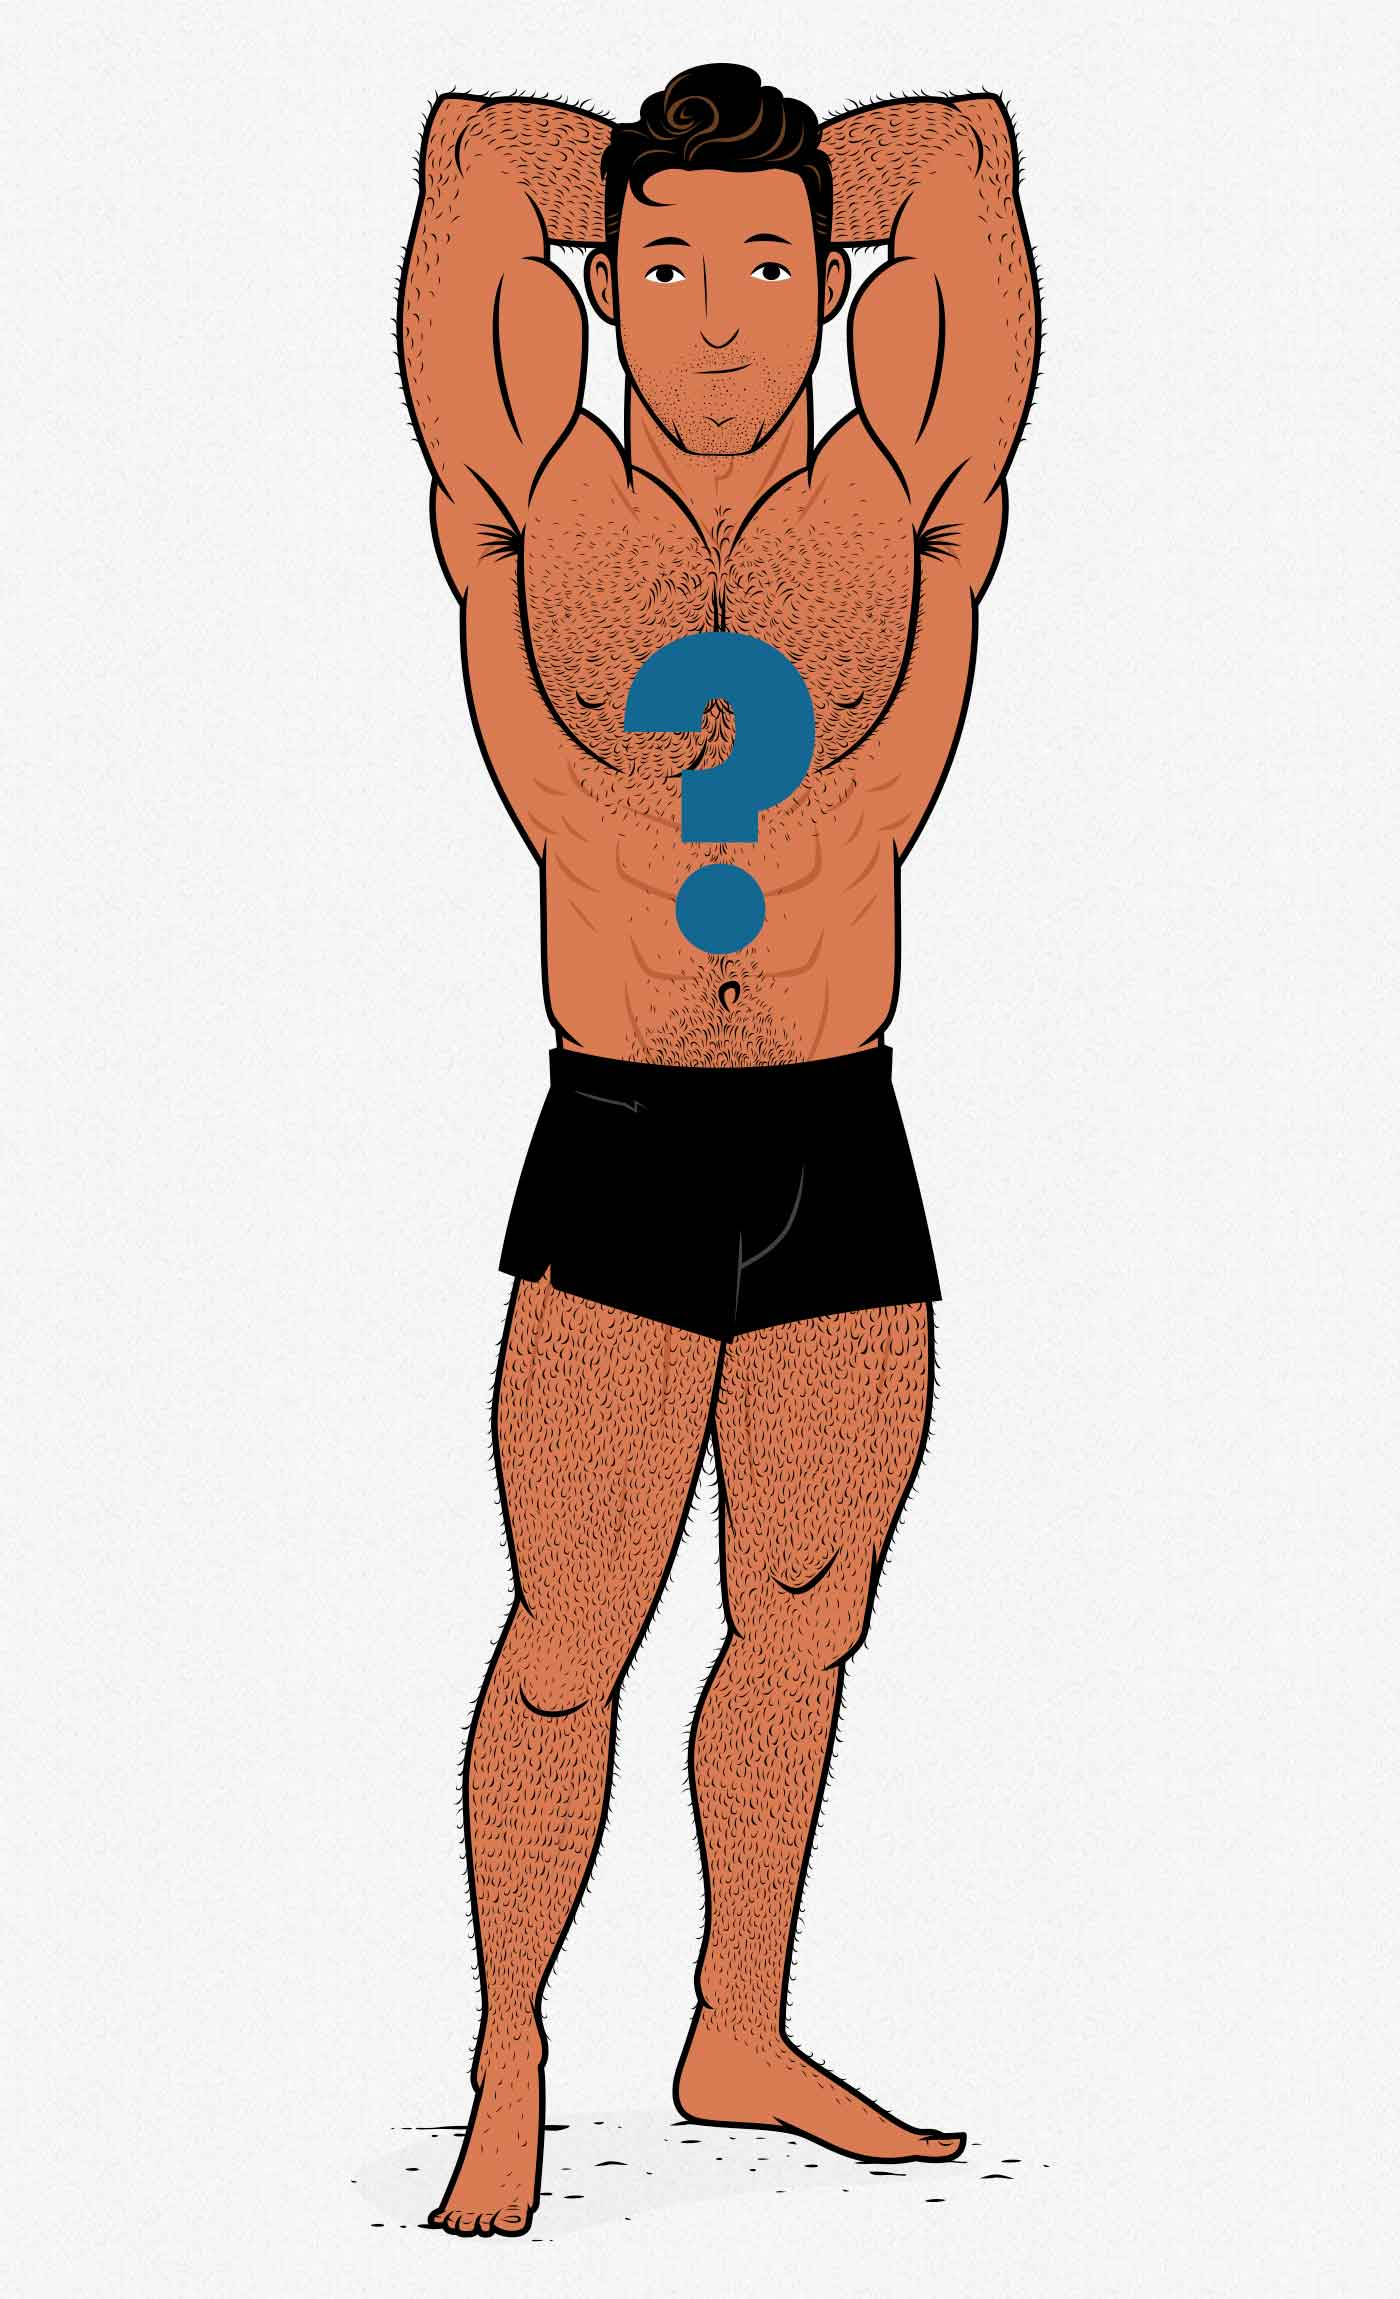 Illustration of a lean and muscular bodybuilder.